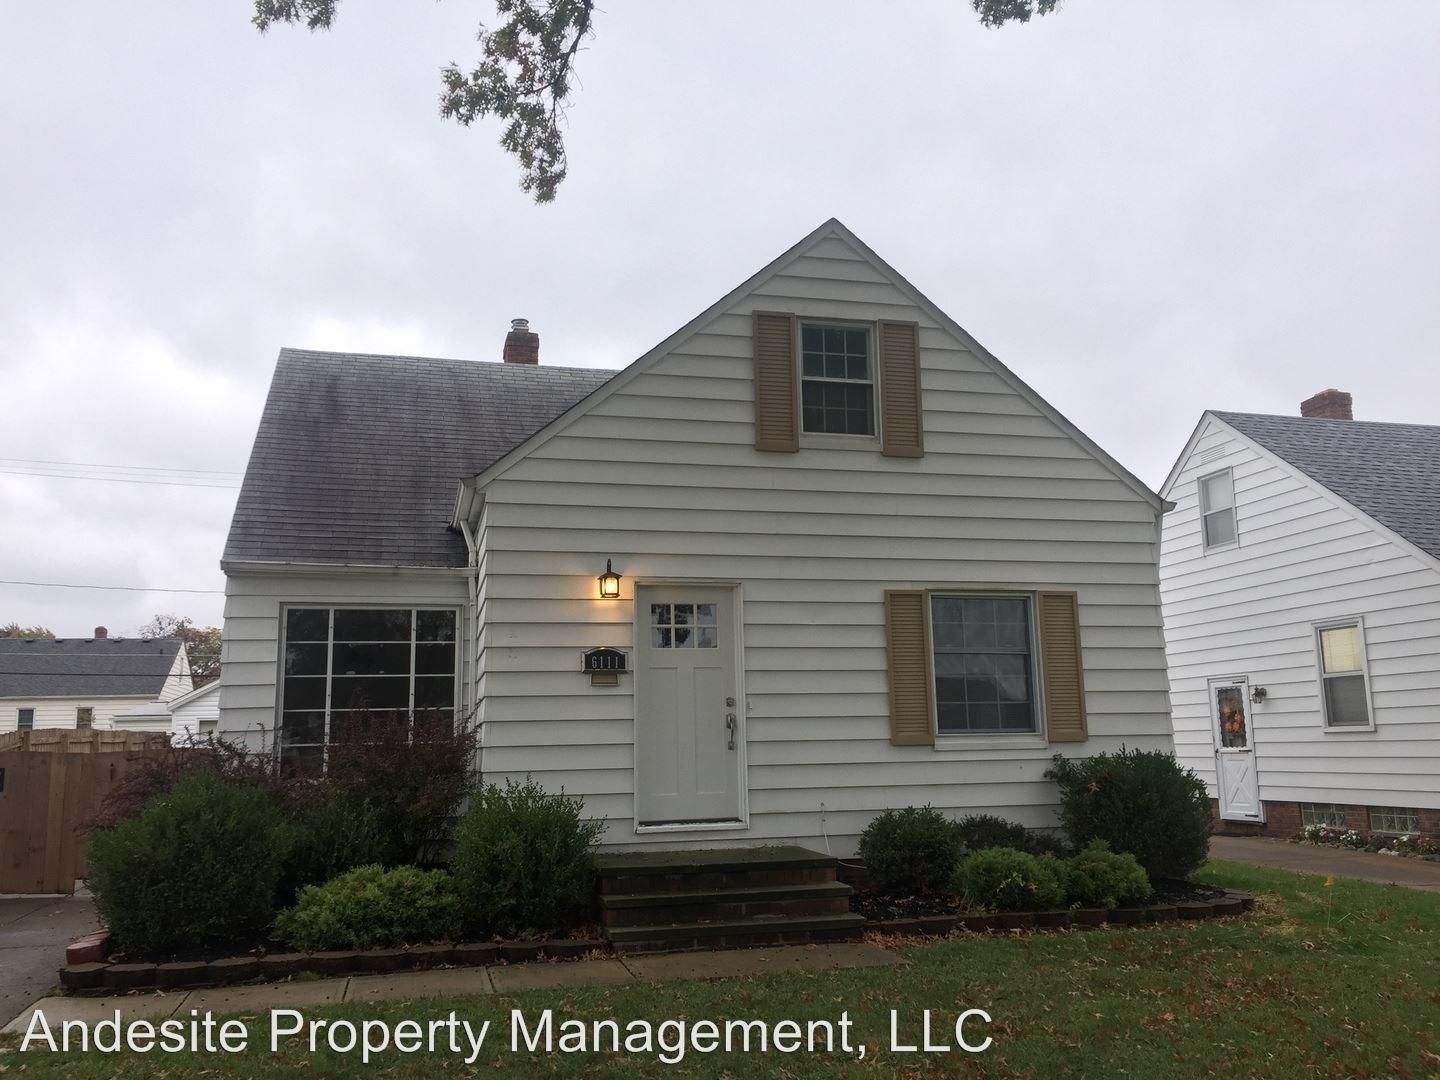 6111 ACKLEY RD. photo #1